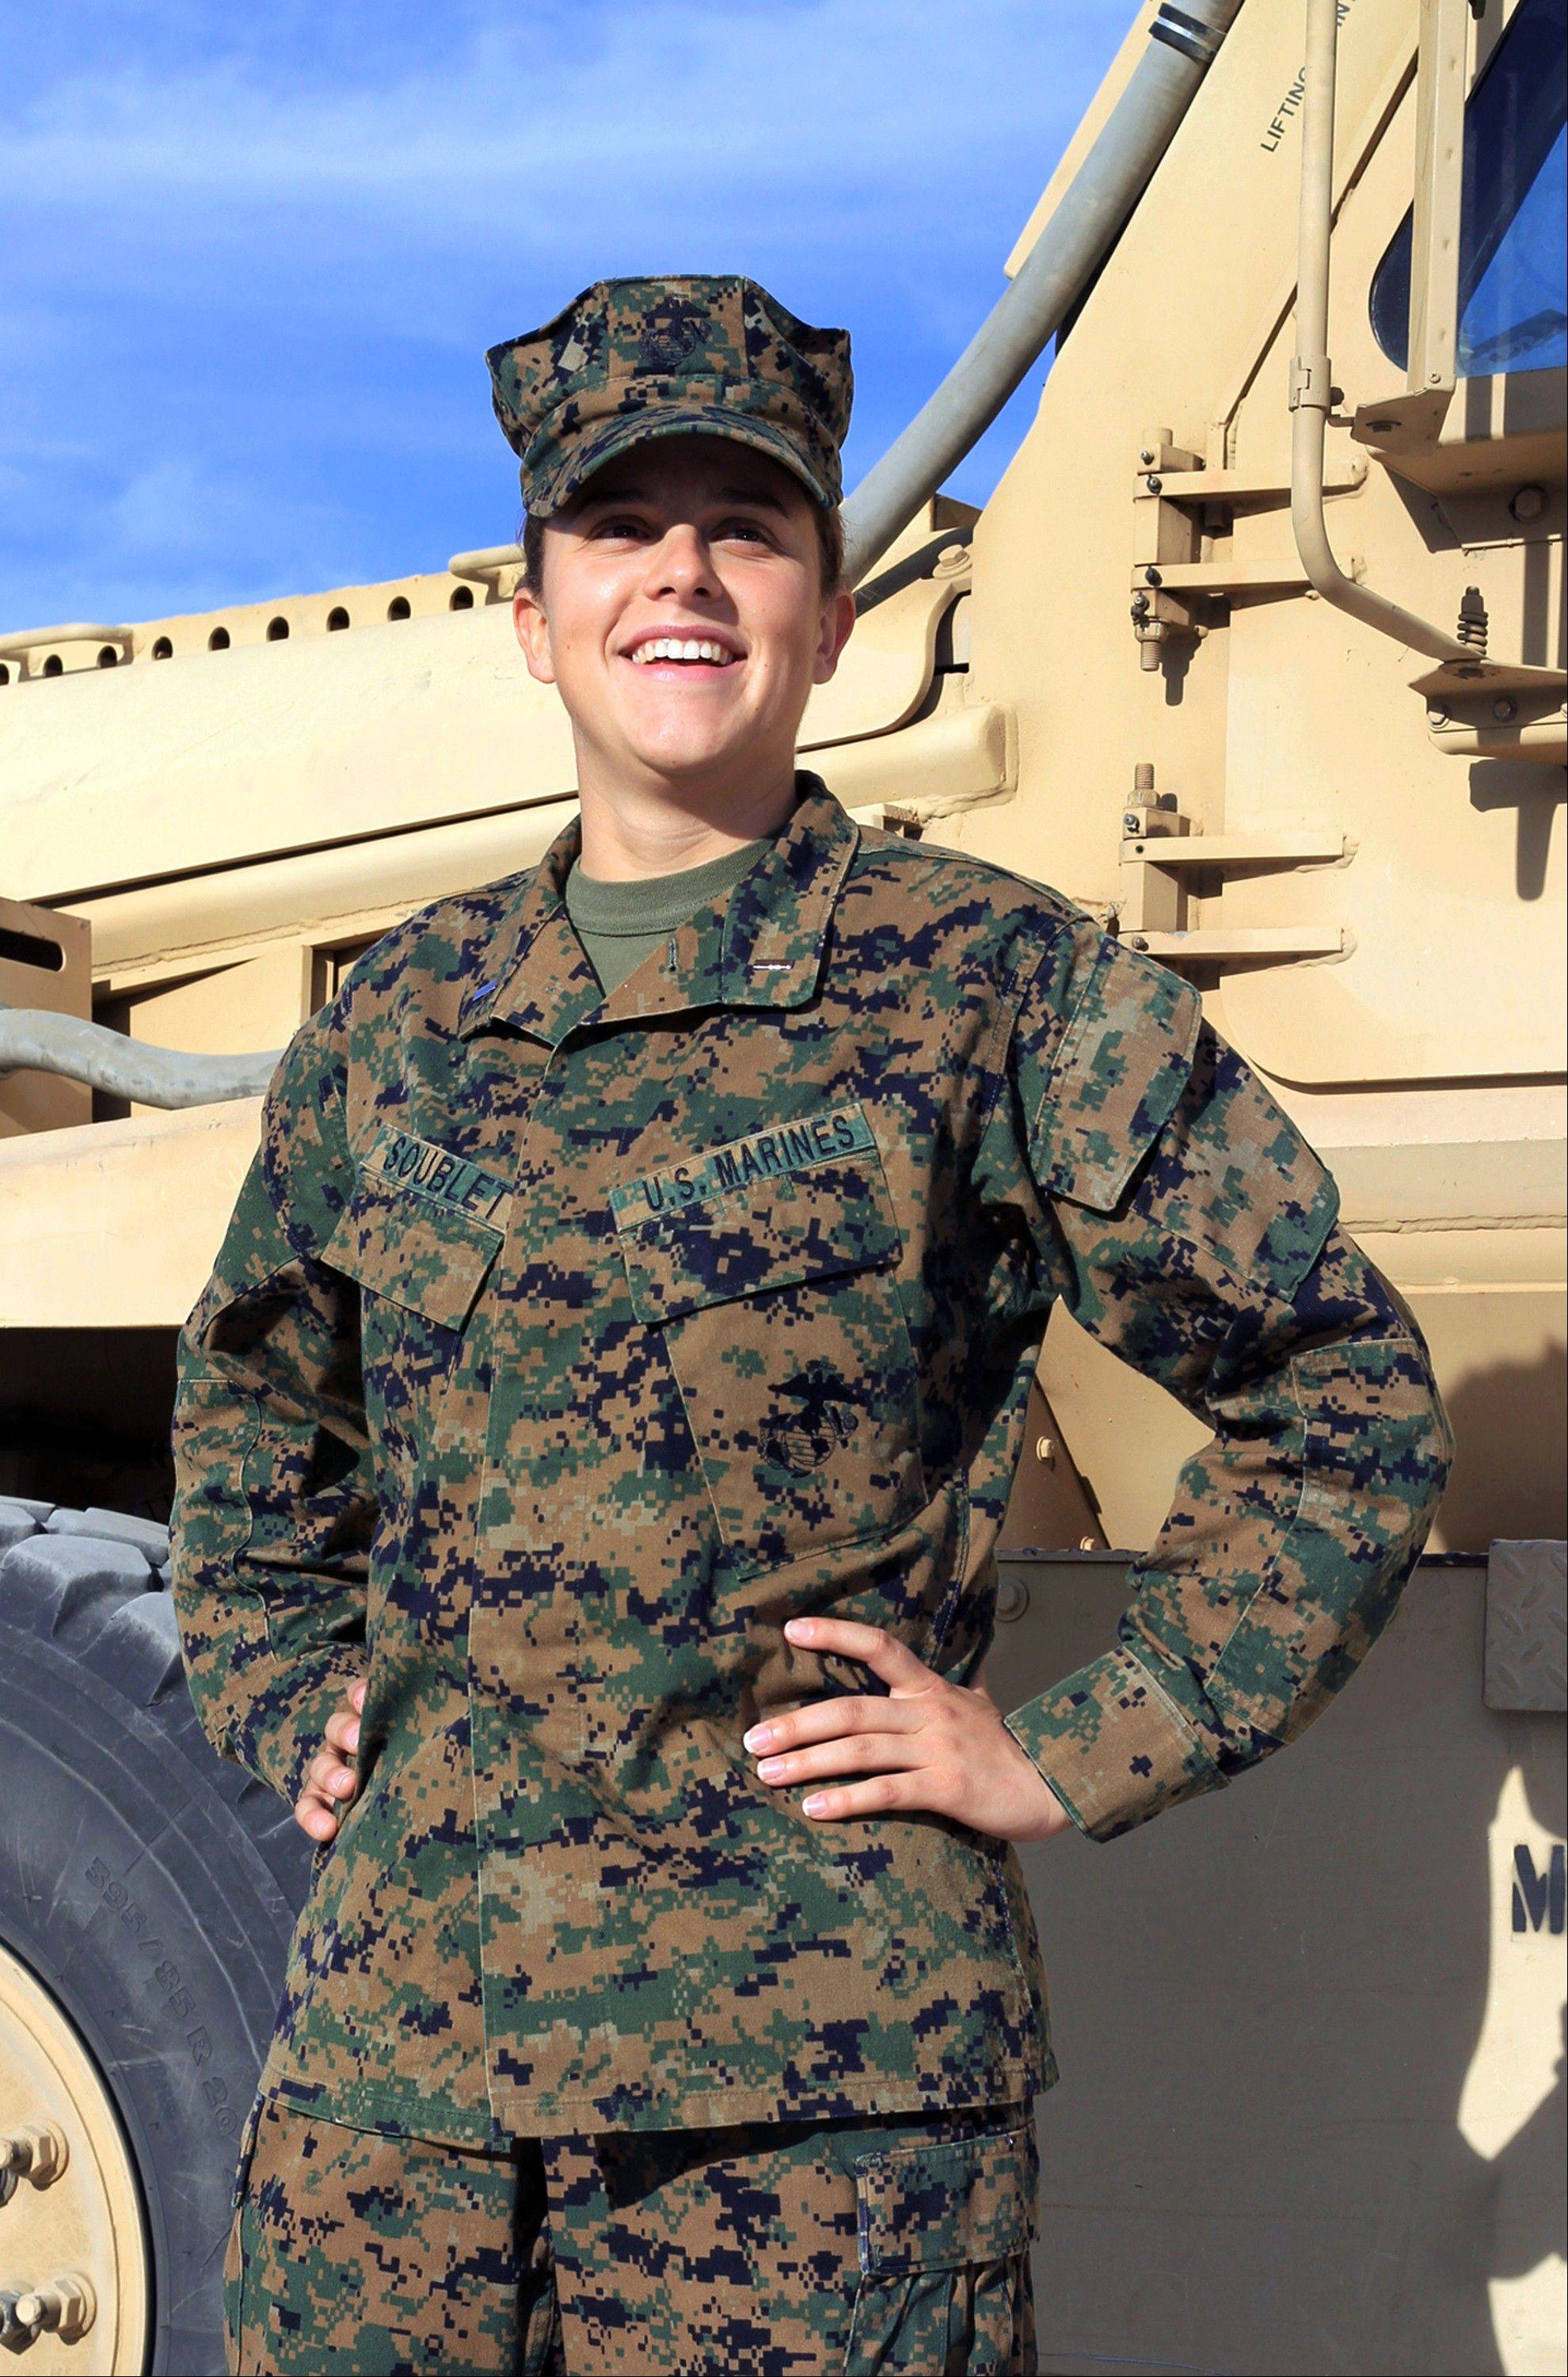 Lt. Brandy Soublet on the Marine base 29 Palms, in Southern California.